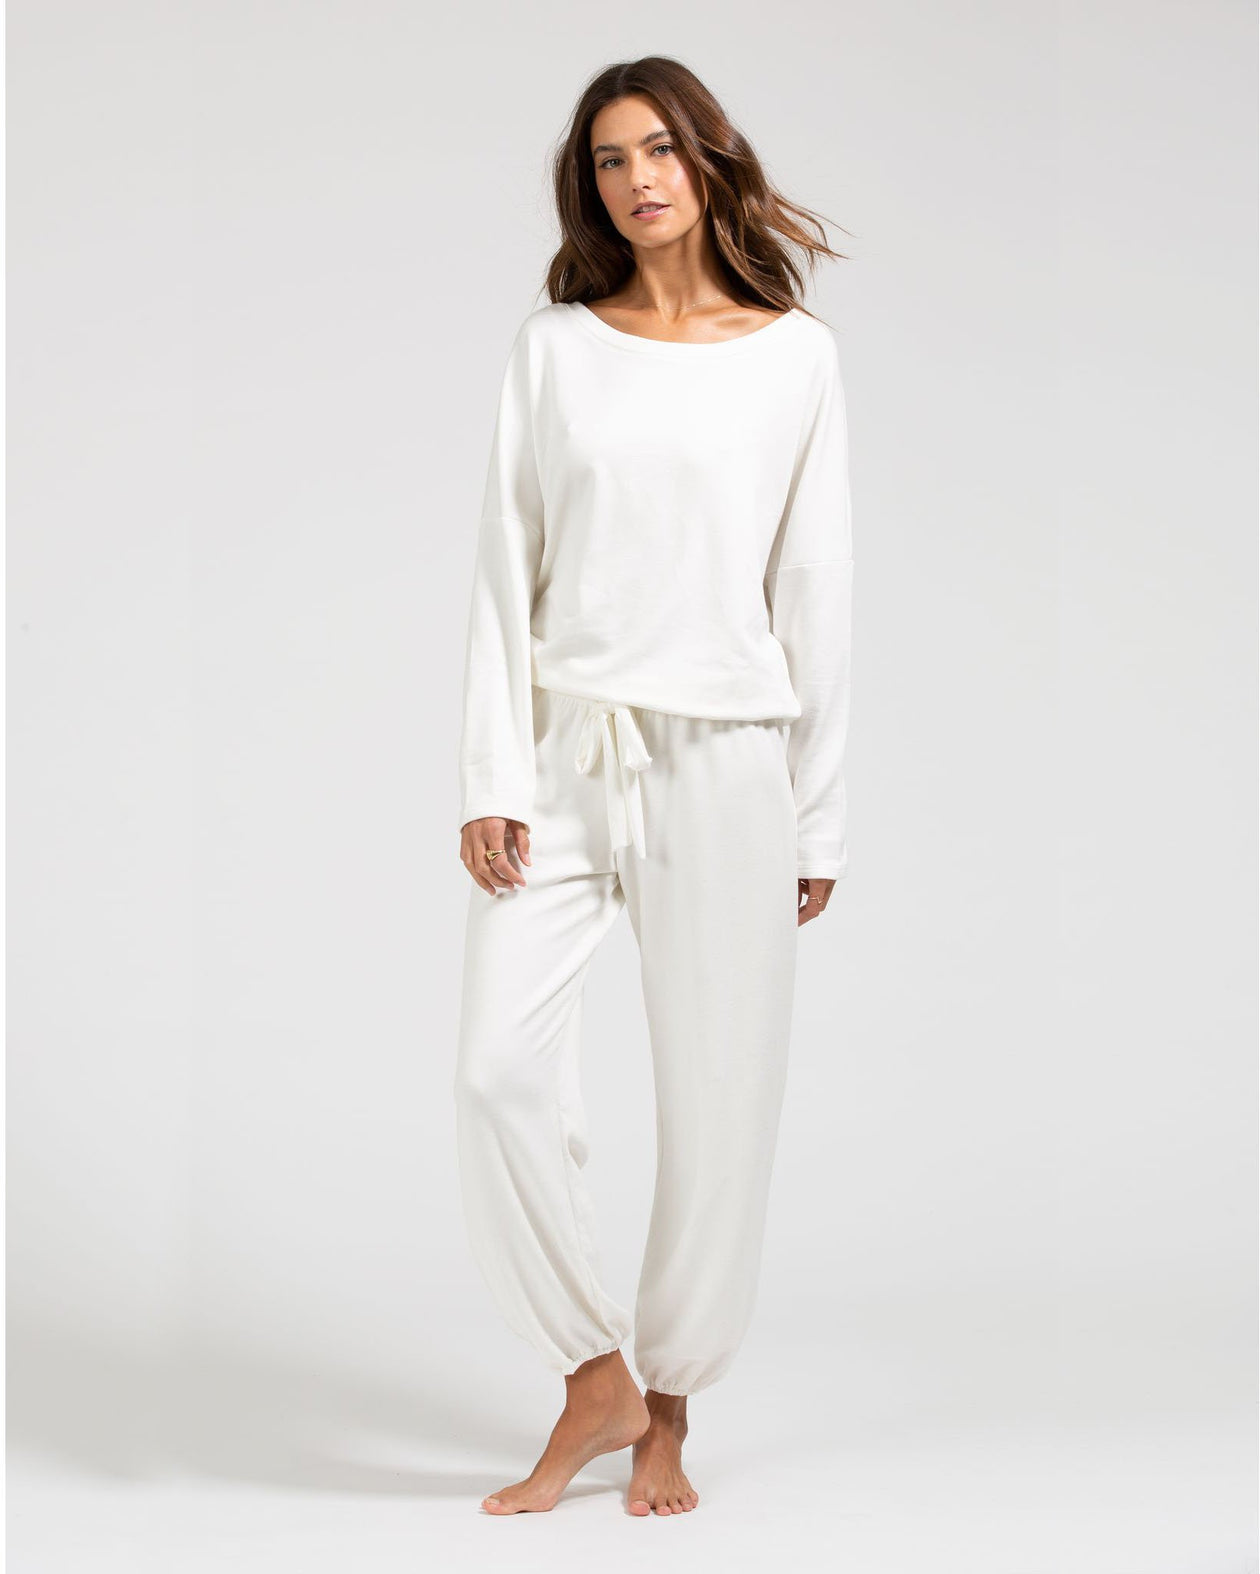 Winter Heather Cropped Pant - Winter White | Eberjey - Women's Sleepwear